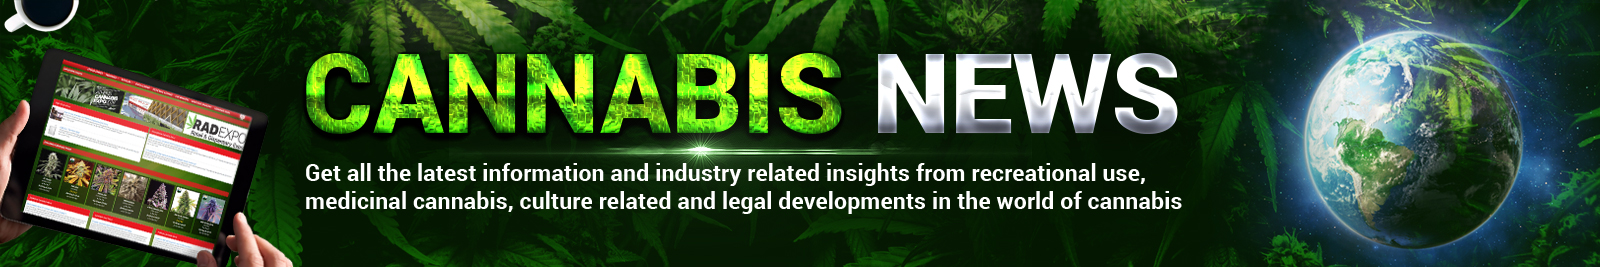 Daily Cannabis News